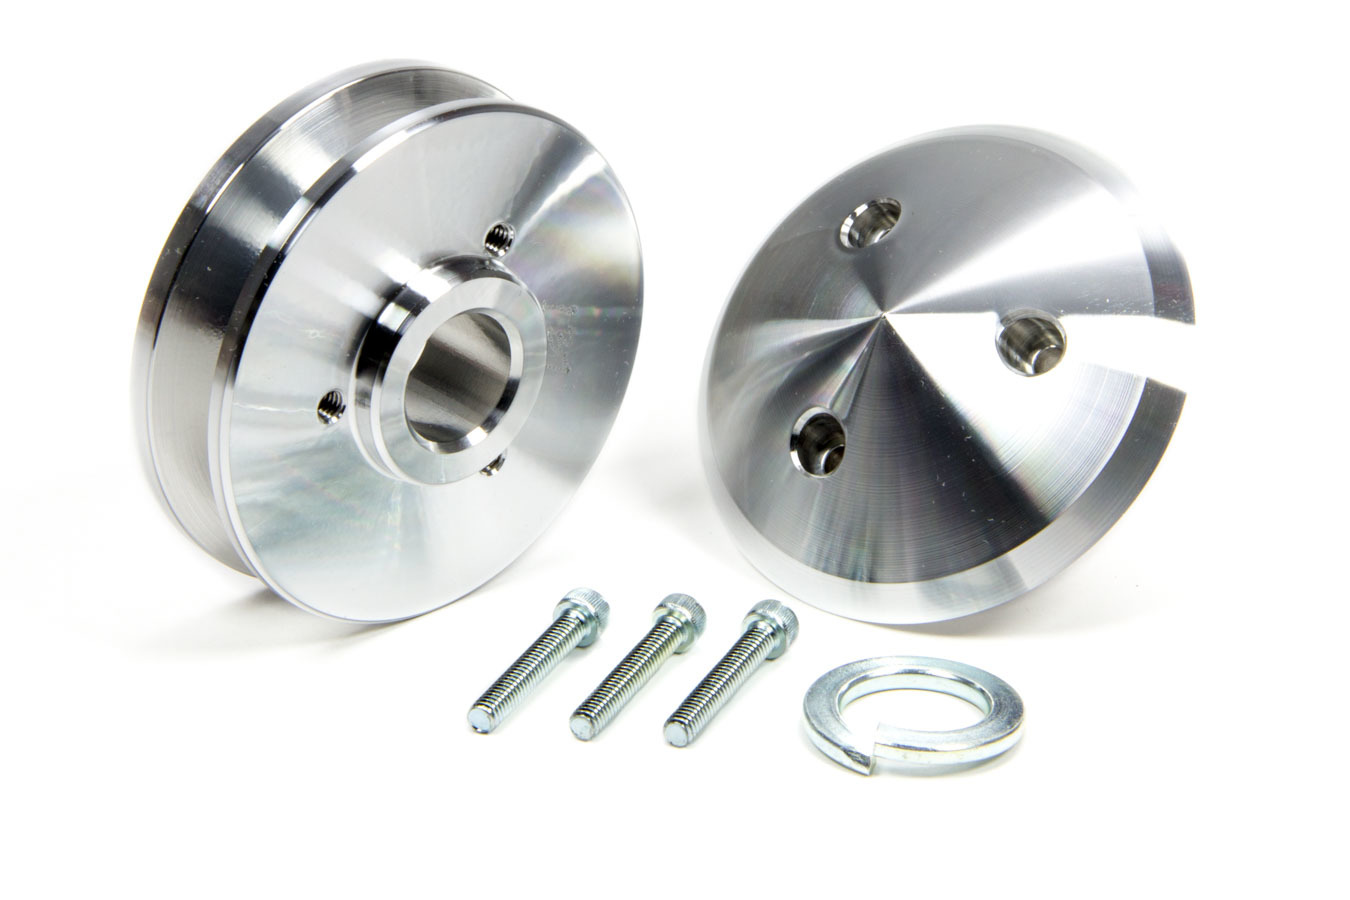 March Performance 137 Alternator Pulley, V-Belt, 1 Groove, 2.688 in Diameter, Cover Included, Aluminum, Clear Powder Coat, Universal, Kit